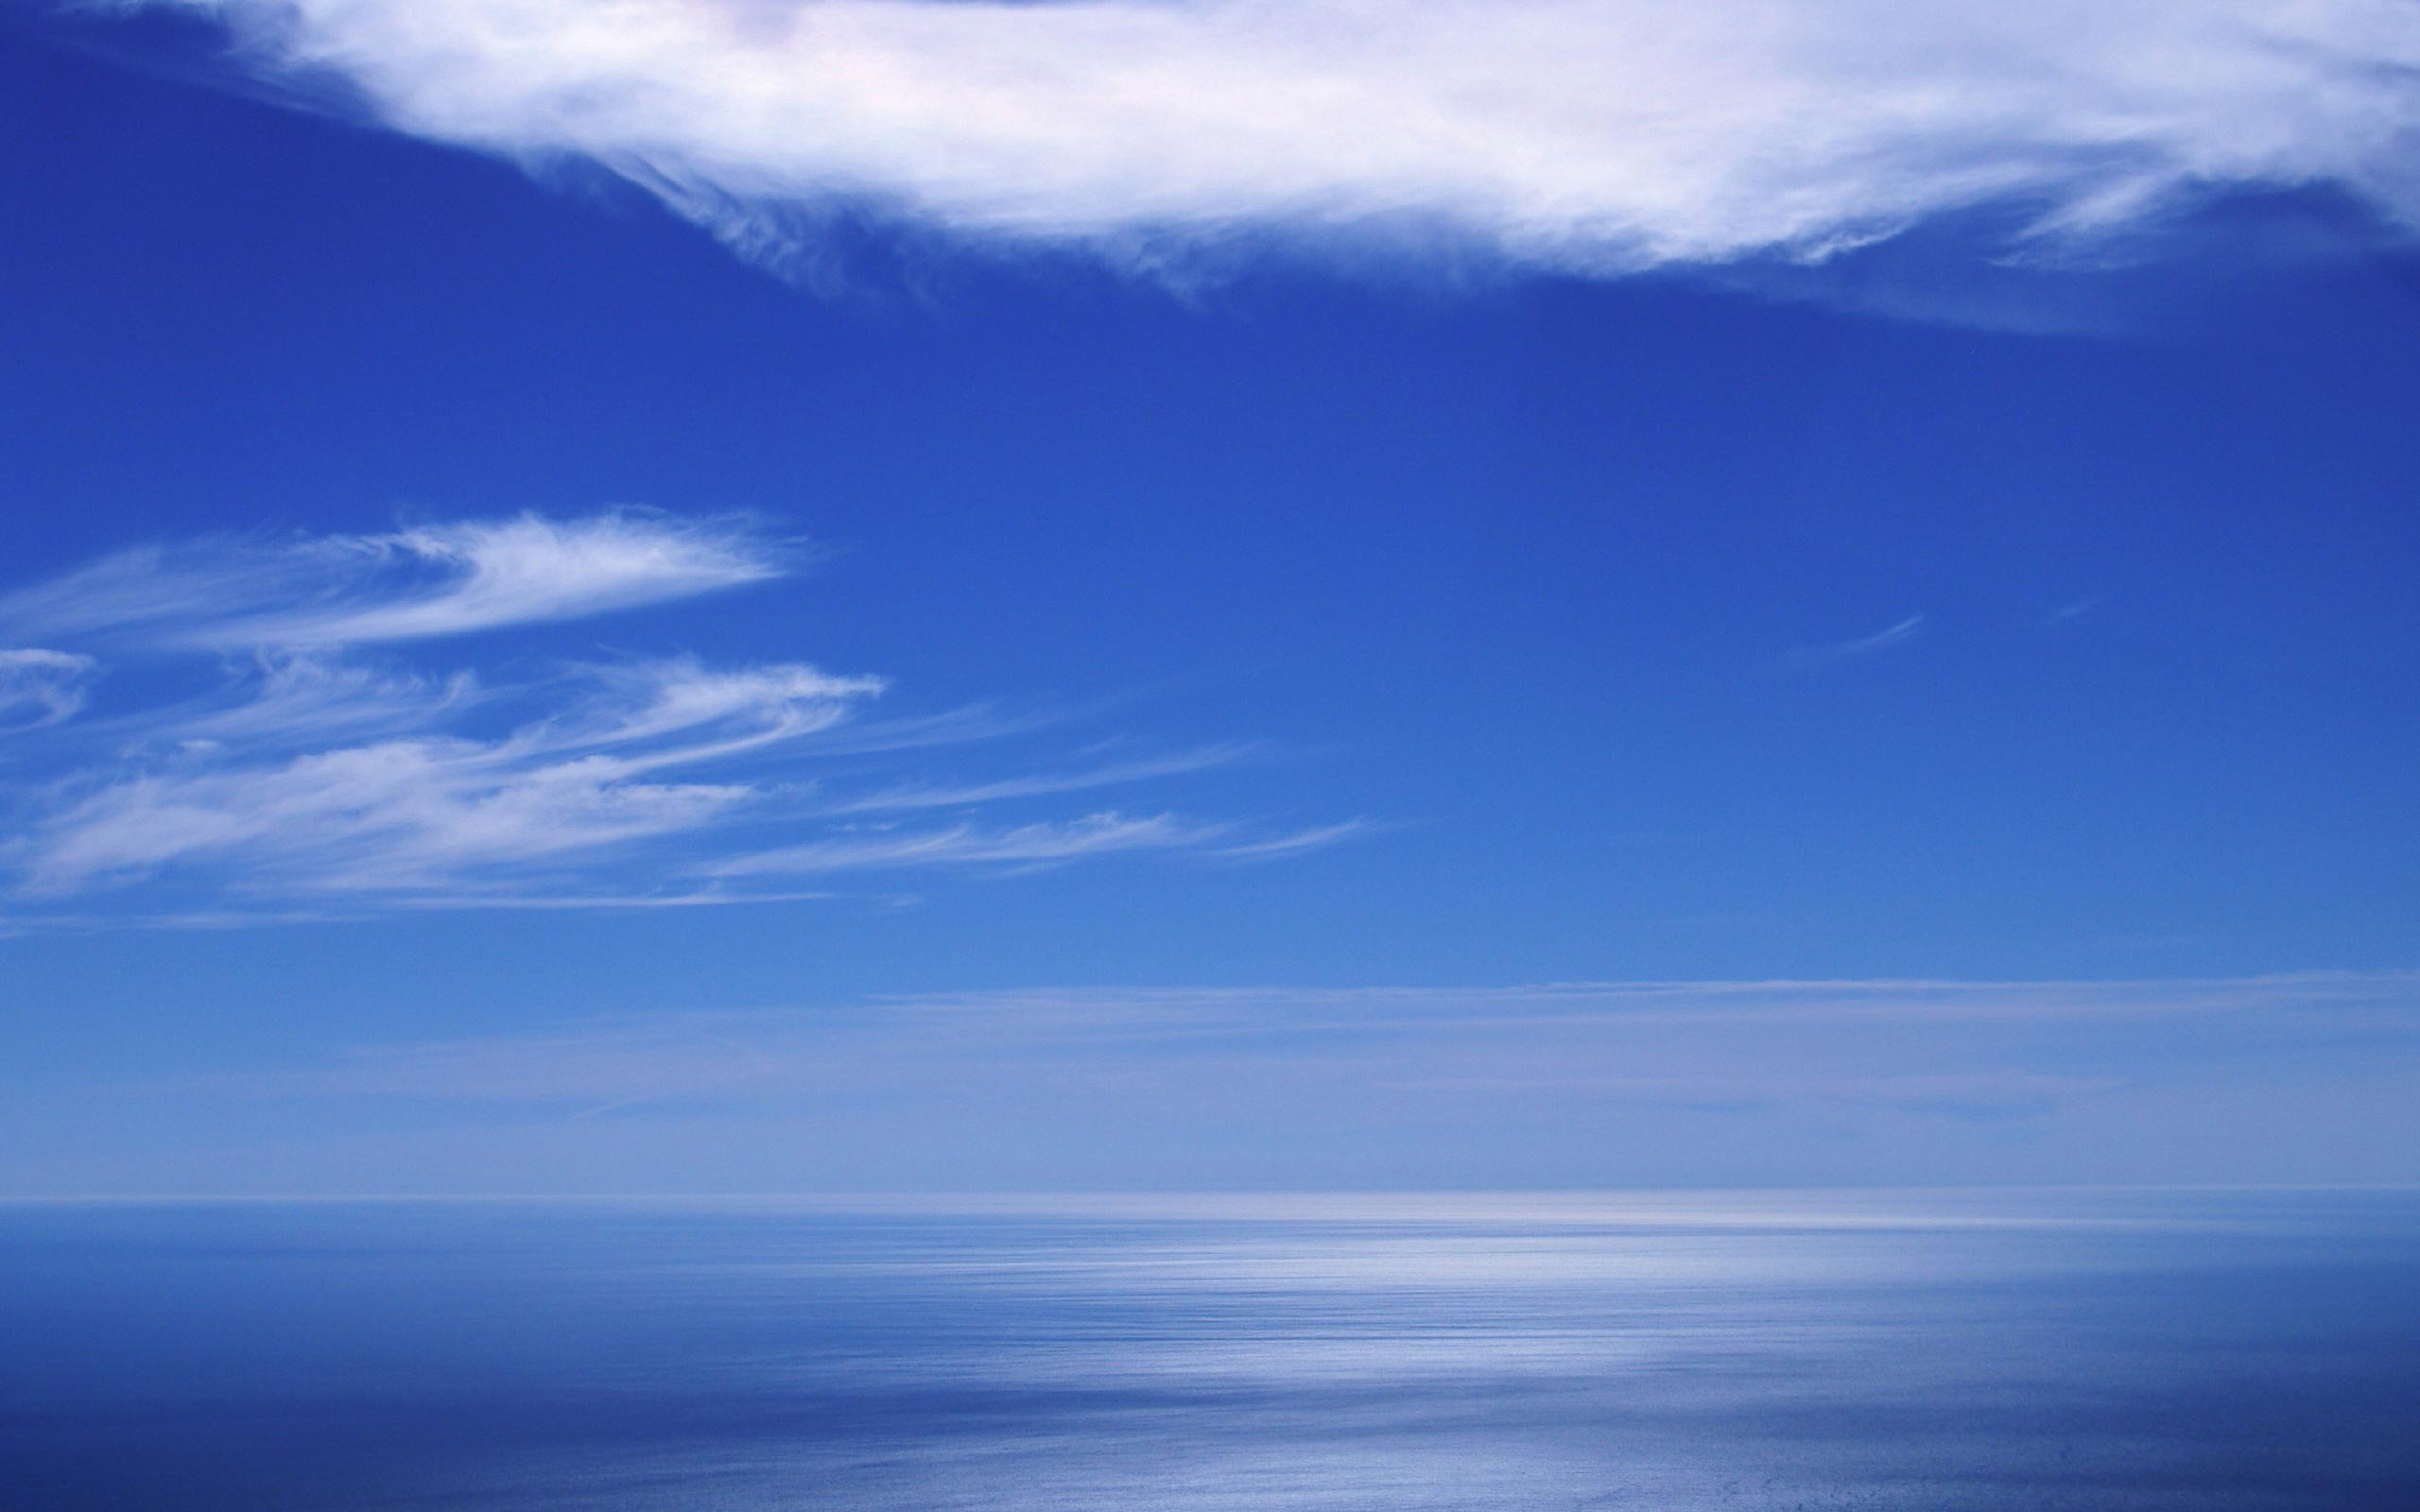 Blue Sky Relaxing Wallpapers 2560x1600